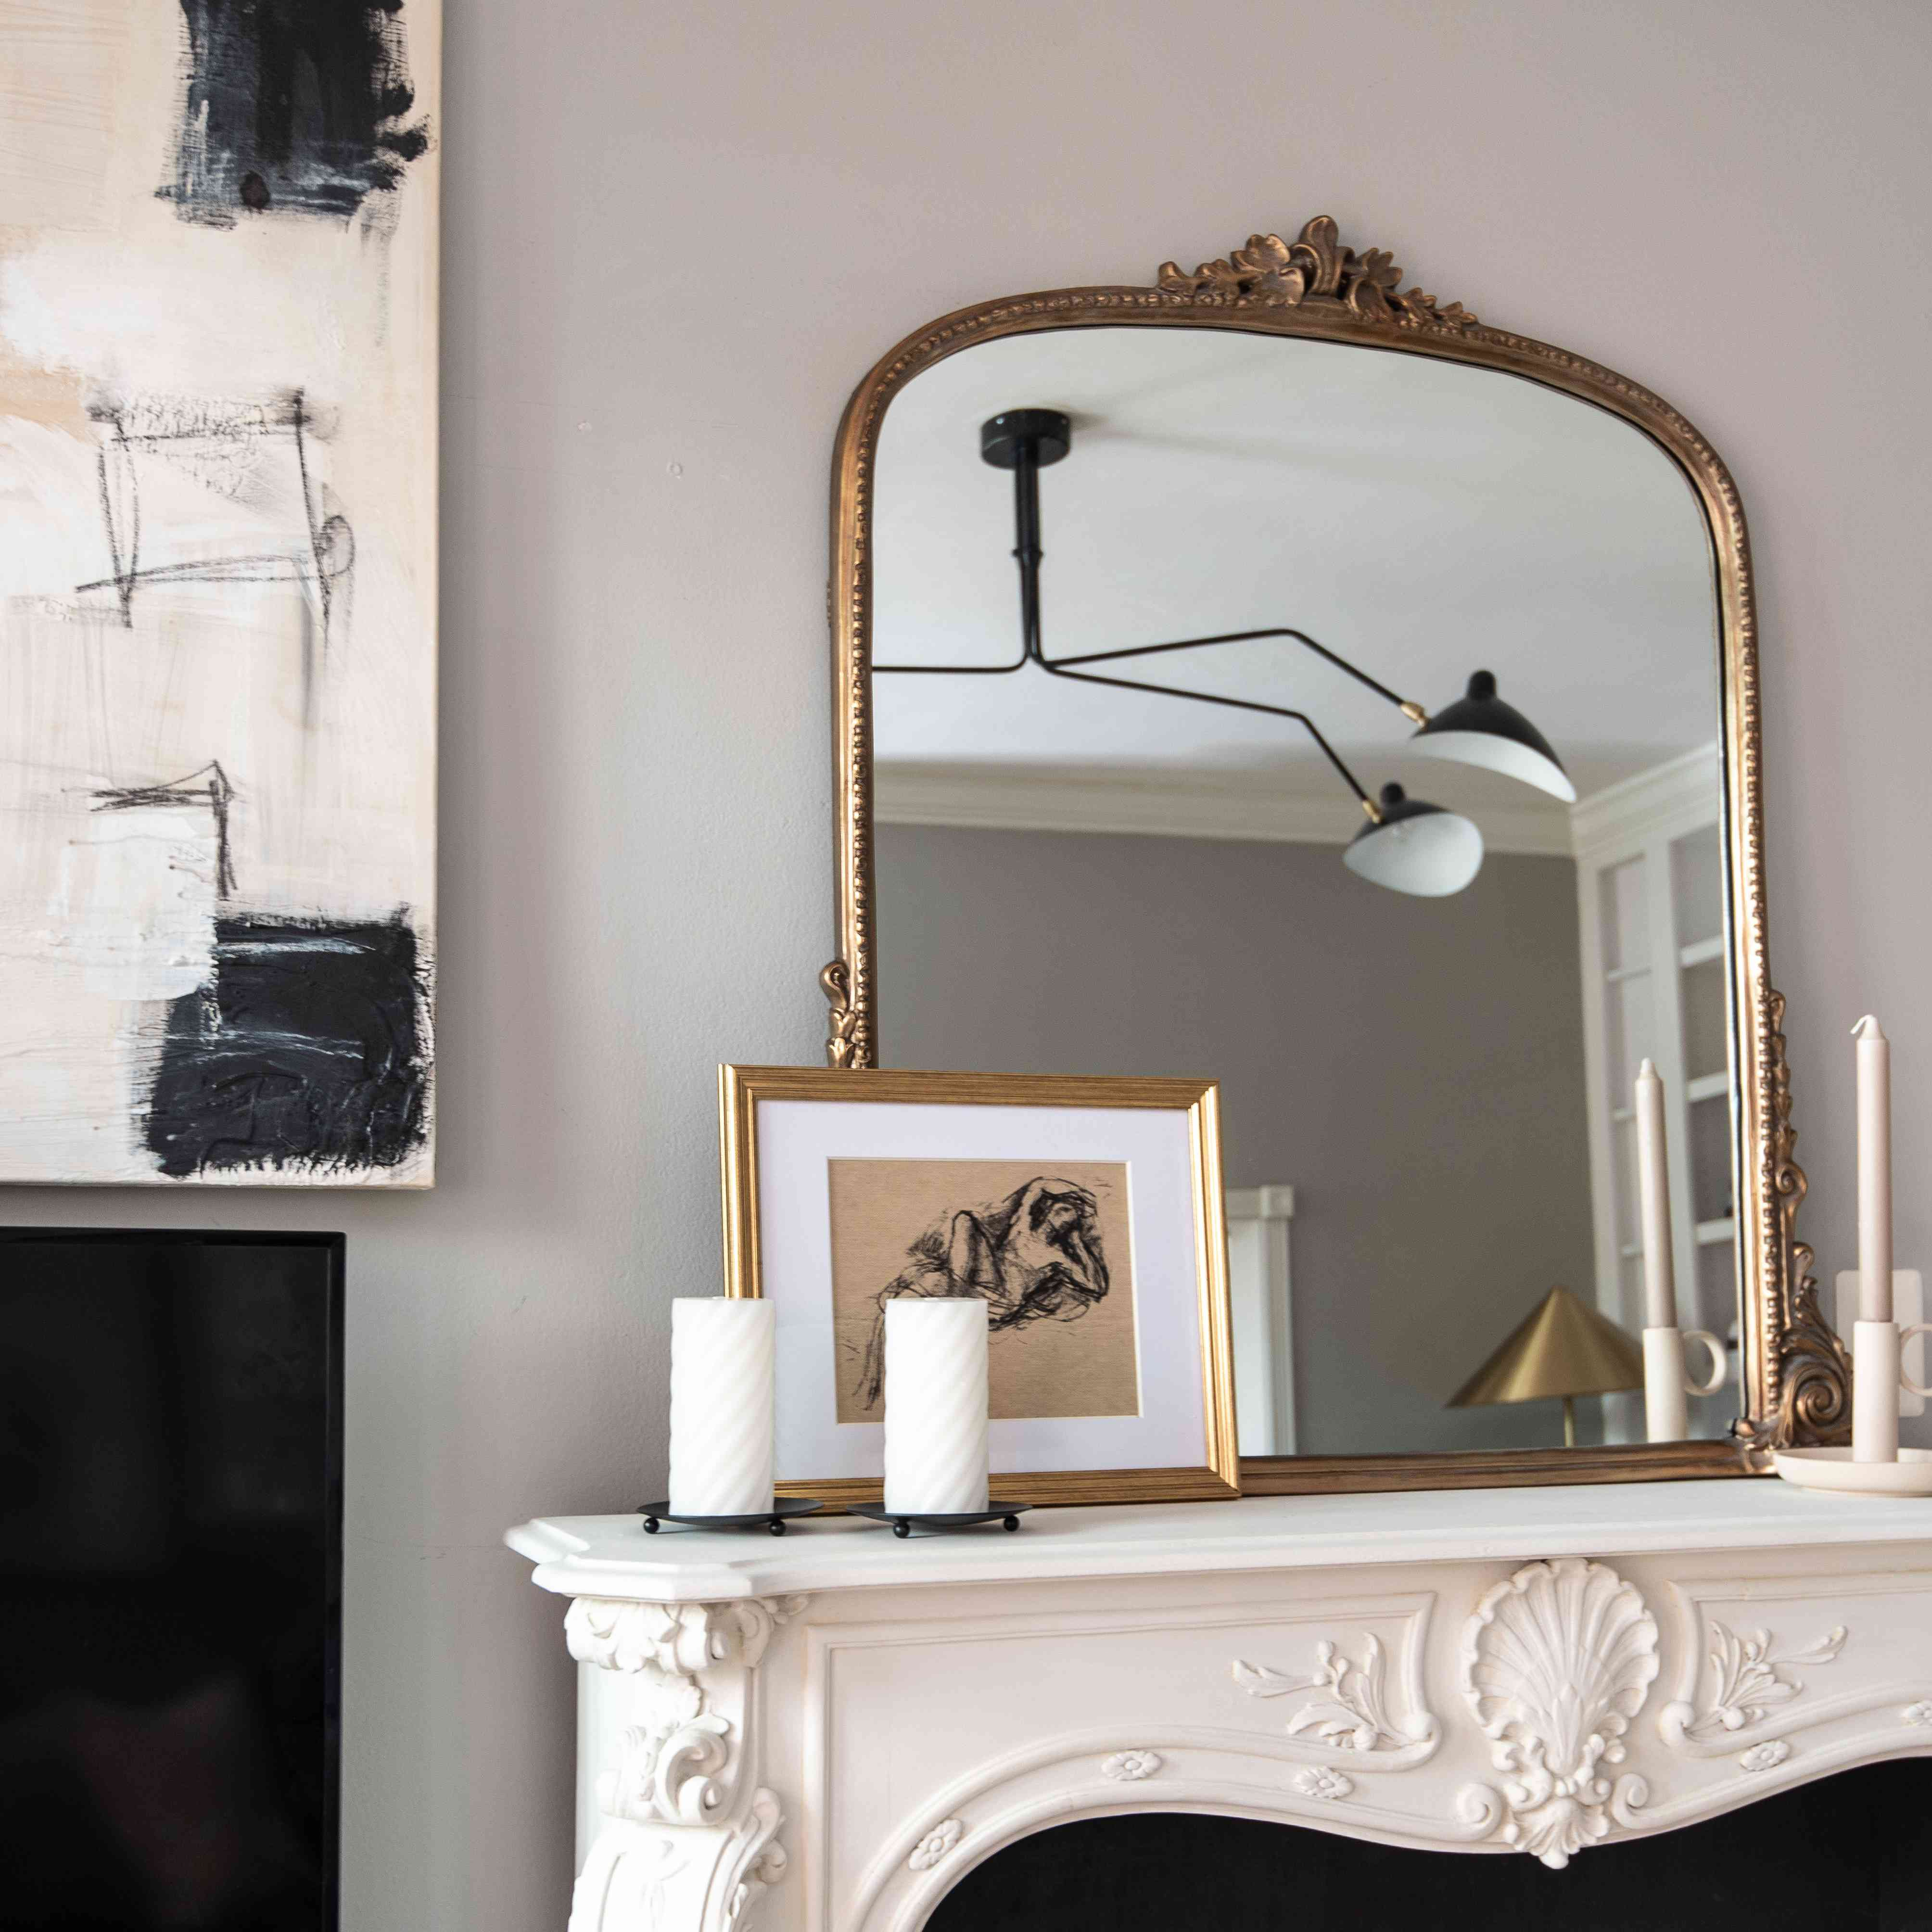 Gold mirror and other gold accessories on mantle.